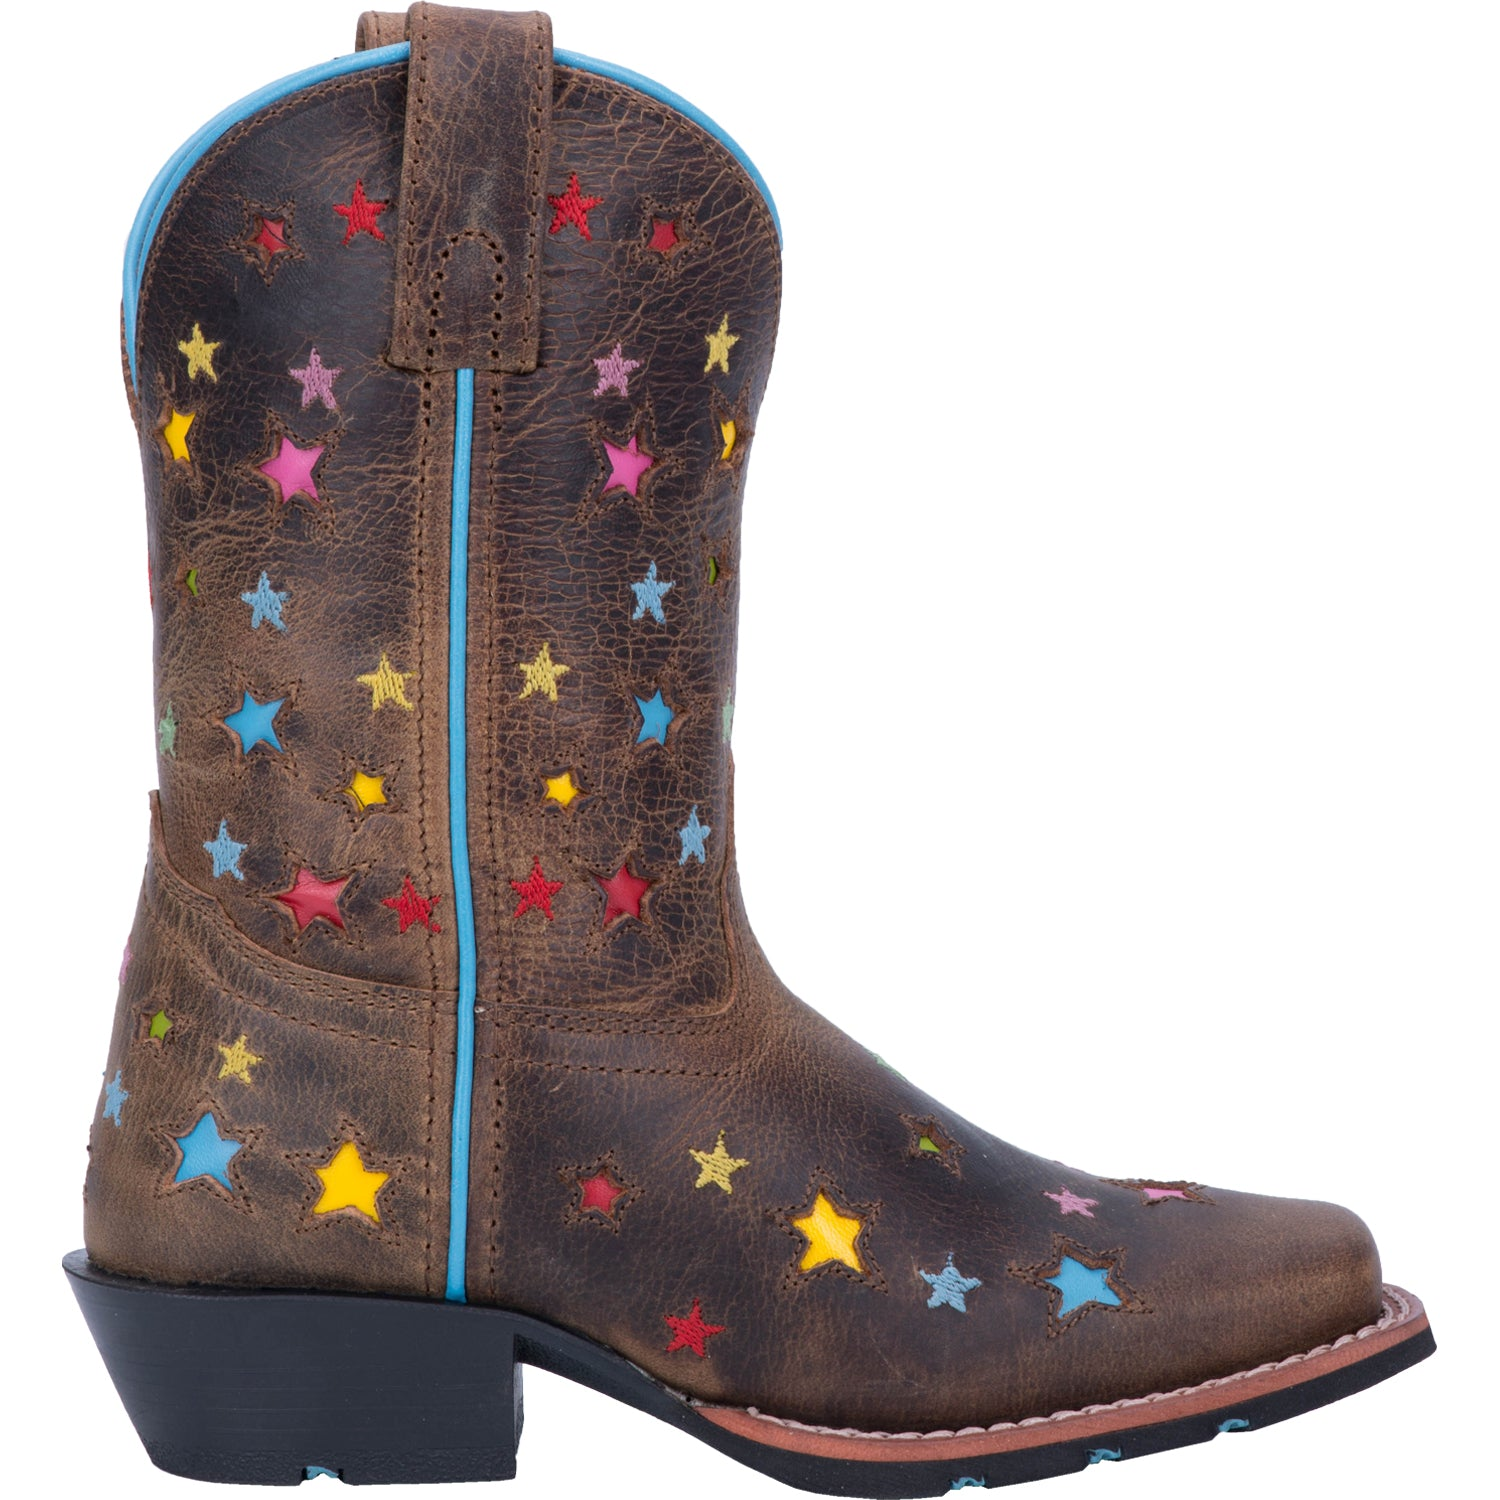 STARLETT LEATHER YOUTH BOOT 15521816772650